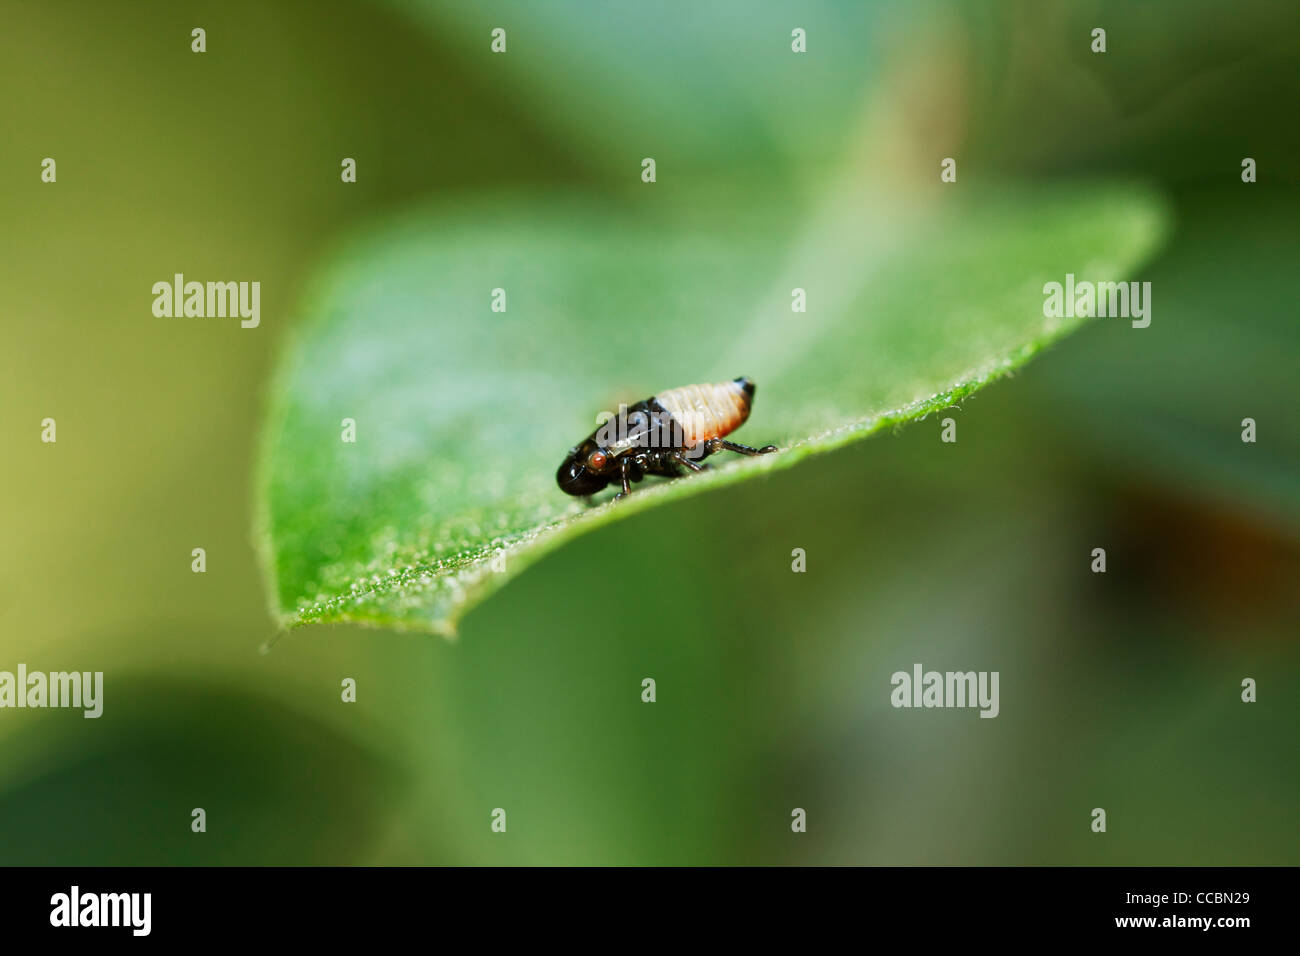 Froghopper (Cercopis vulnerata) nymph, also known as a spittlebug - Stock Image